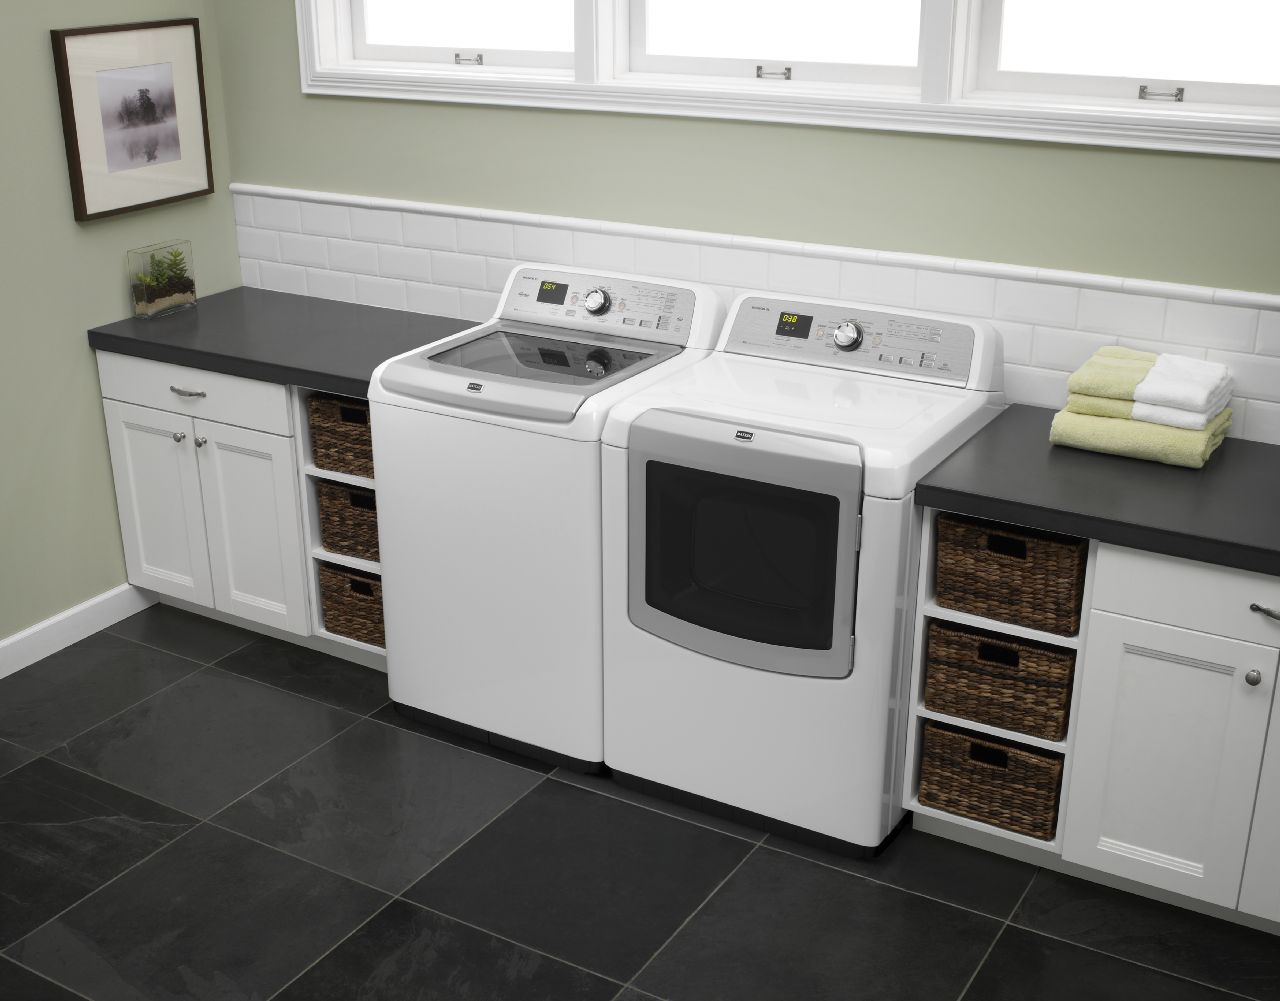 Maytag Washer Won T Drain How To Unclog Your Washing Machine Drain Hose Or Pump Flamingo Appliance Service